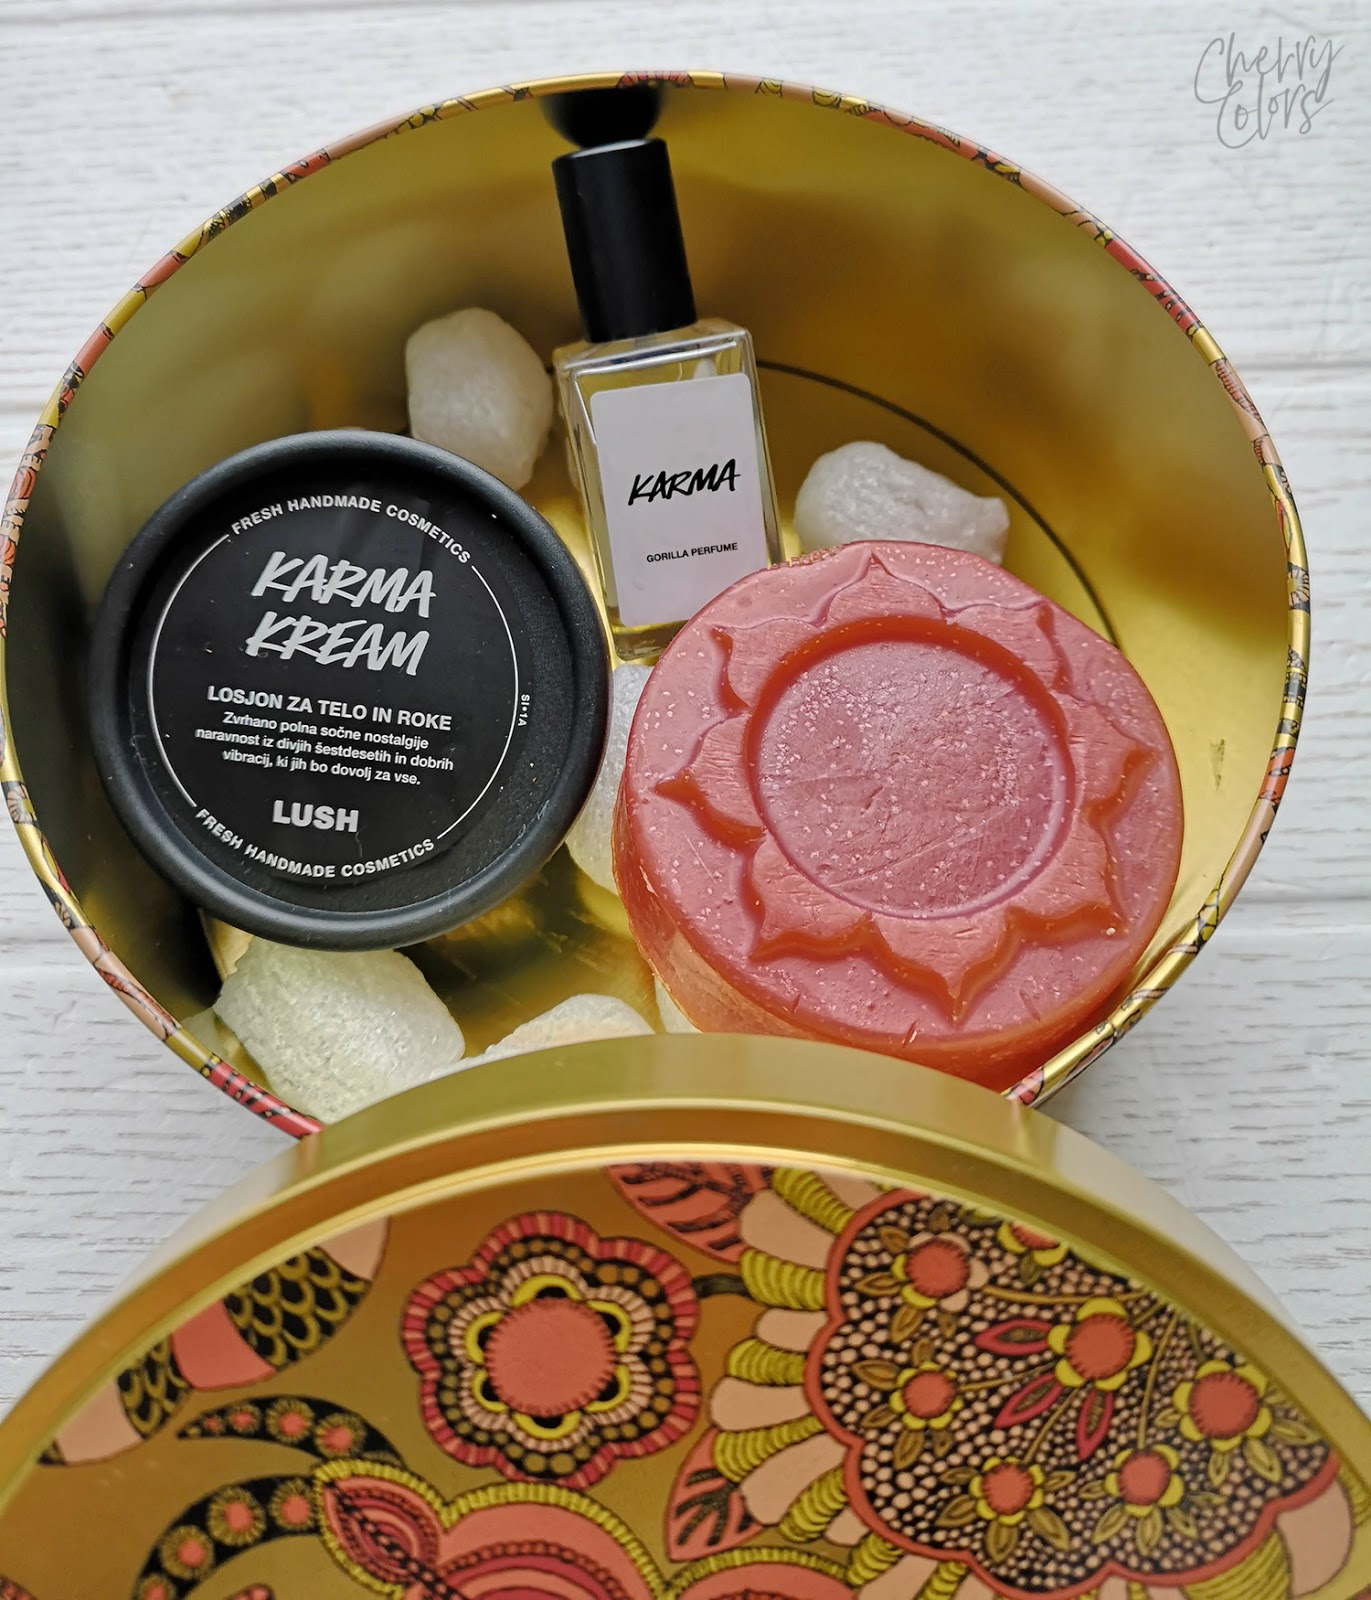 Lush Karma package